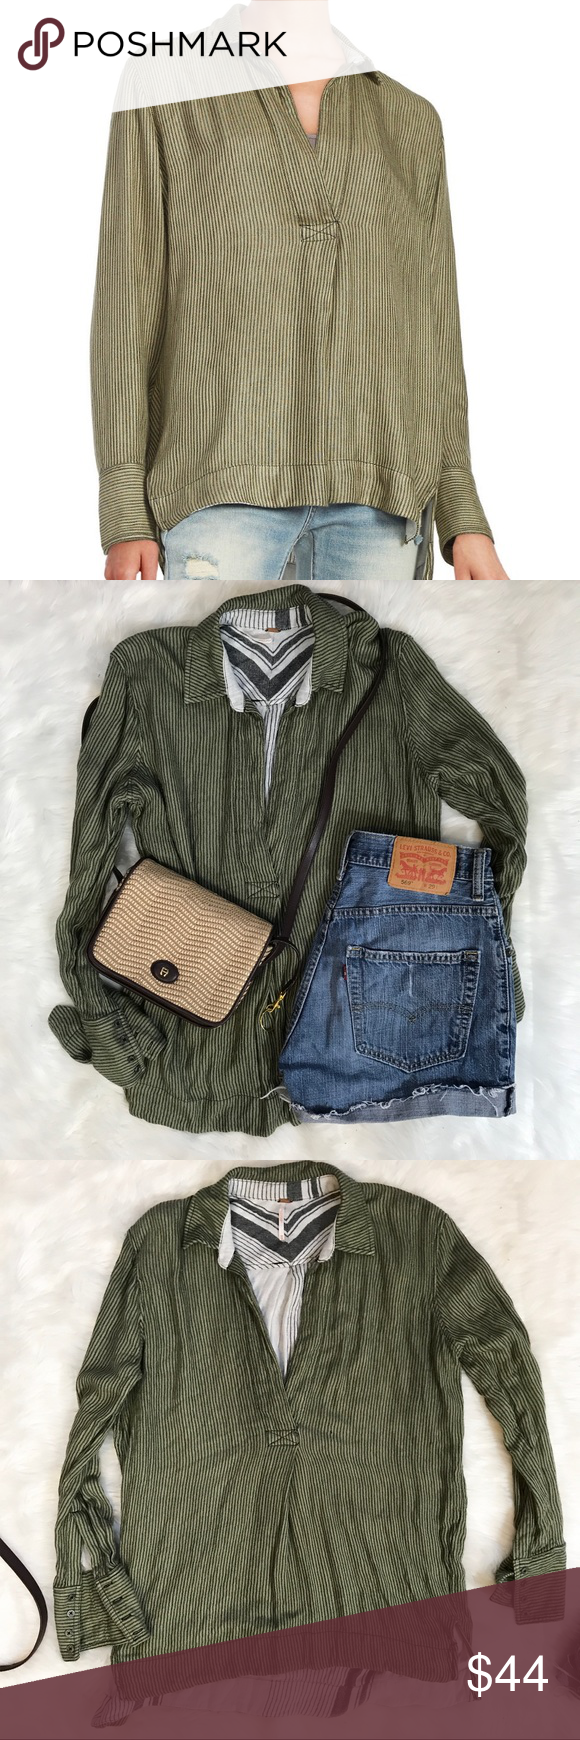 """Free People Green Striped On the Road Shirt Beach style collared shirt. Striped olive green with hi-low design. 4 buttons on wrist. Natural bust is 40"""". Front is 26"""" long, while back is 29"""" long. Worn look. Extra soft. Good condition. Size XS Free People Tops"""